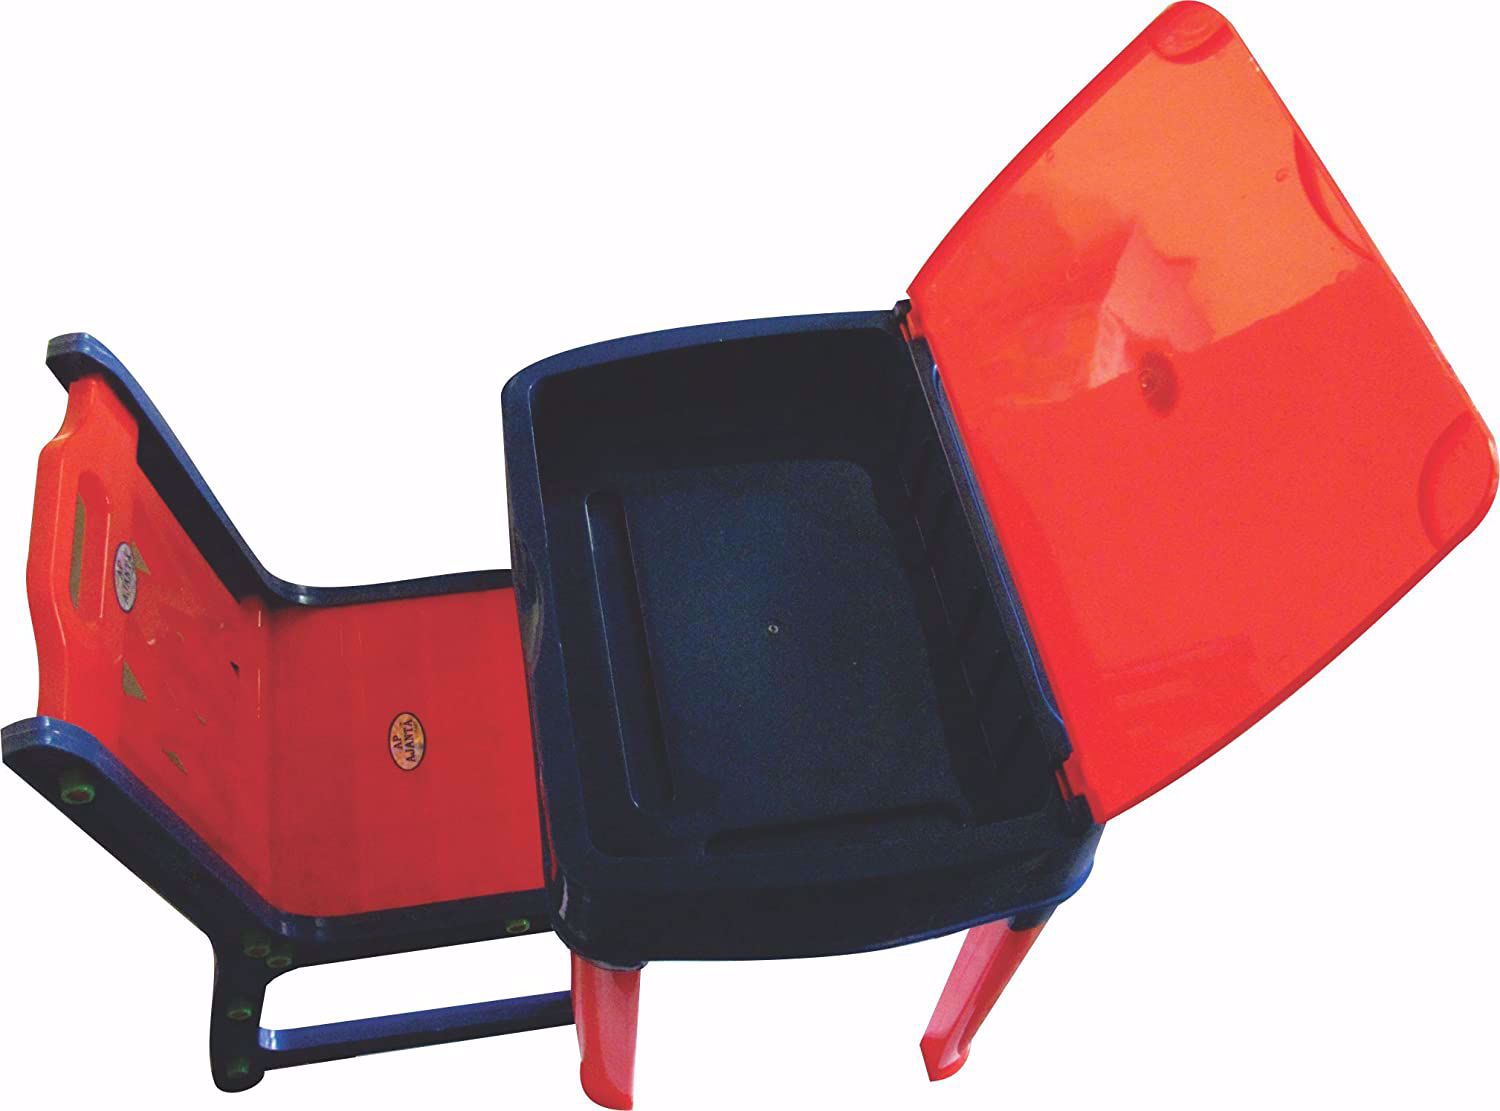 Kids Plastic Study Table - Red & Blue, study table online